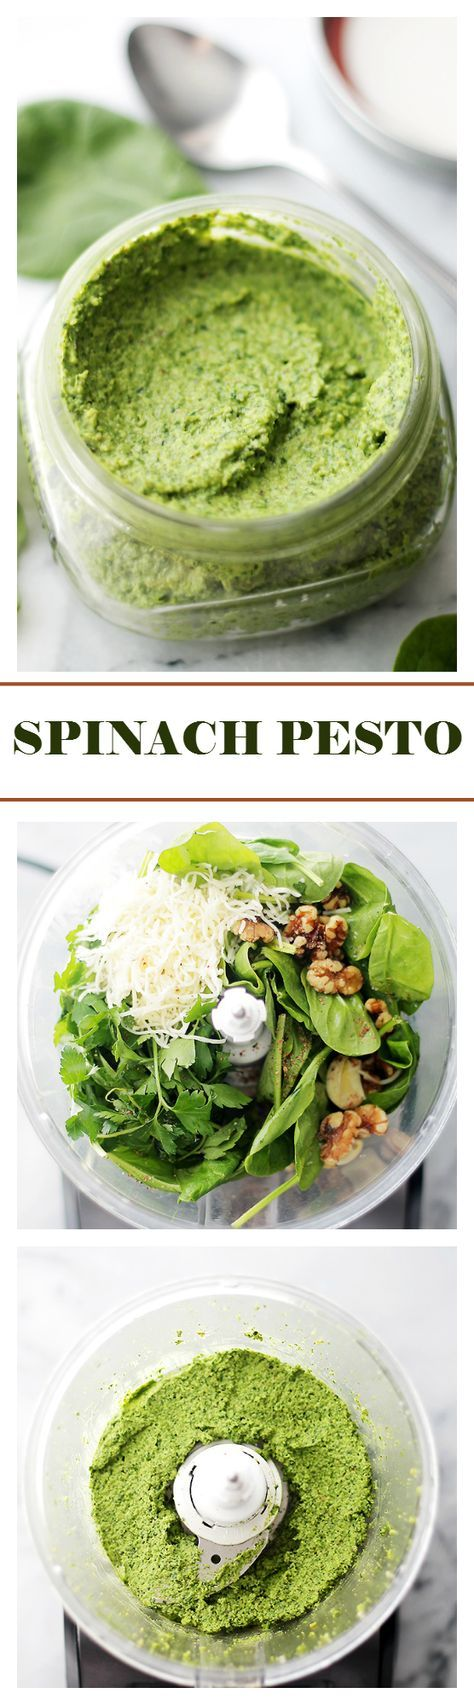 Spinach Pesto - Made with just a handful of everyday ingredients including fresh spinach and parmesan cheese, this healthy sauce goes great with pasta, chicken, veggies, and so much more! Get the recipe on diethood.com